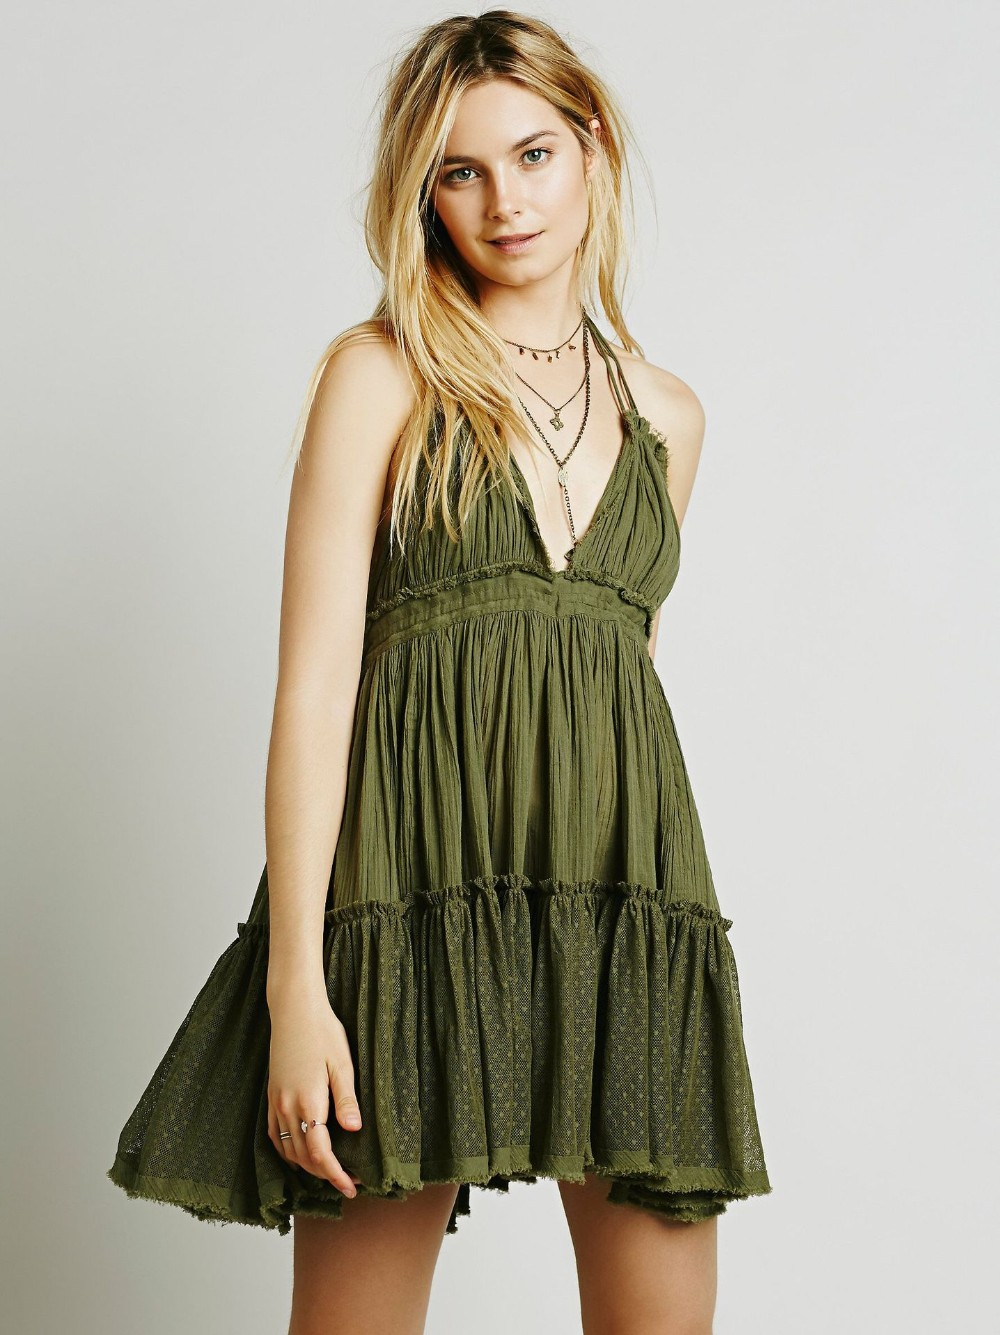 Backless Beach Lace Strapless Short Pleated Cute Dress